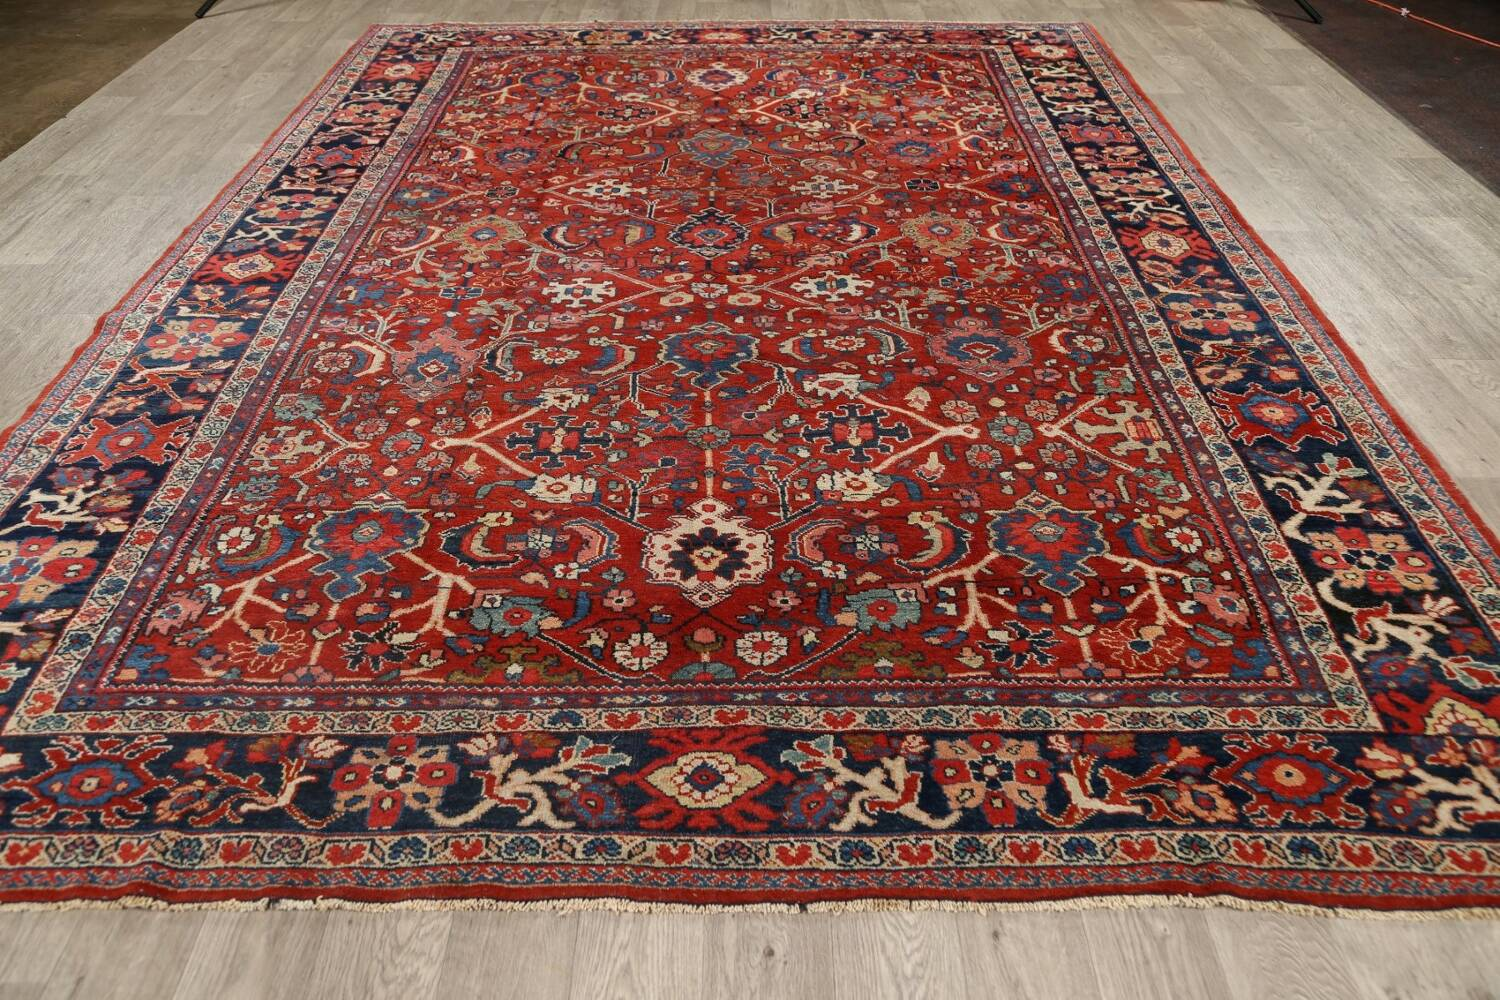 Antique Vegetable Dye Sultanabad Persian Area Rug 9x12 image 14